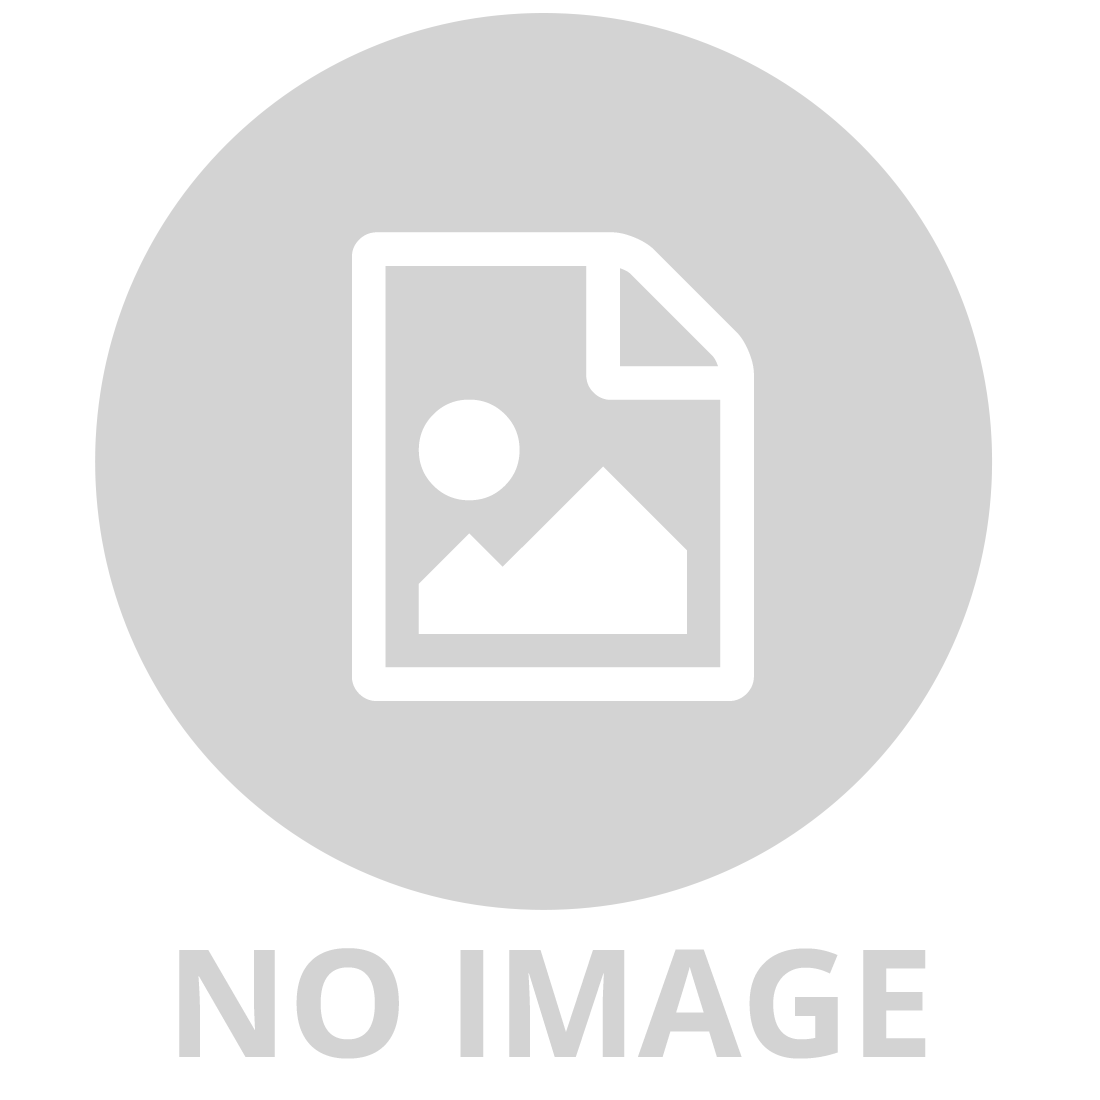 KIDS PROJECTS GLASS PLATE PAINTING